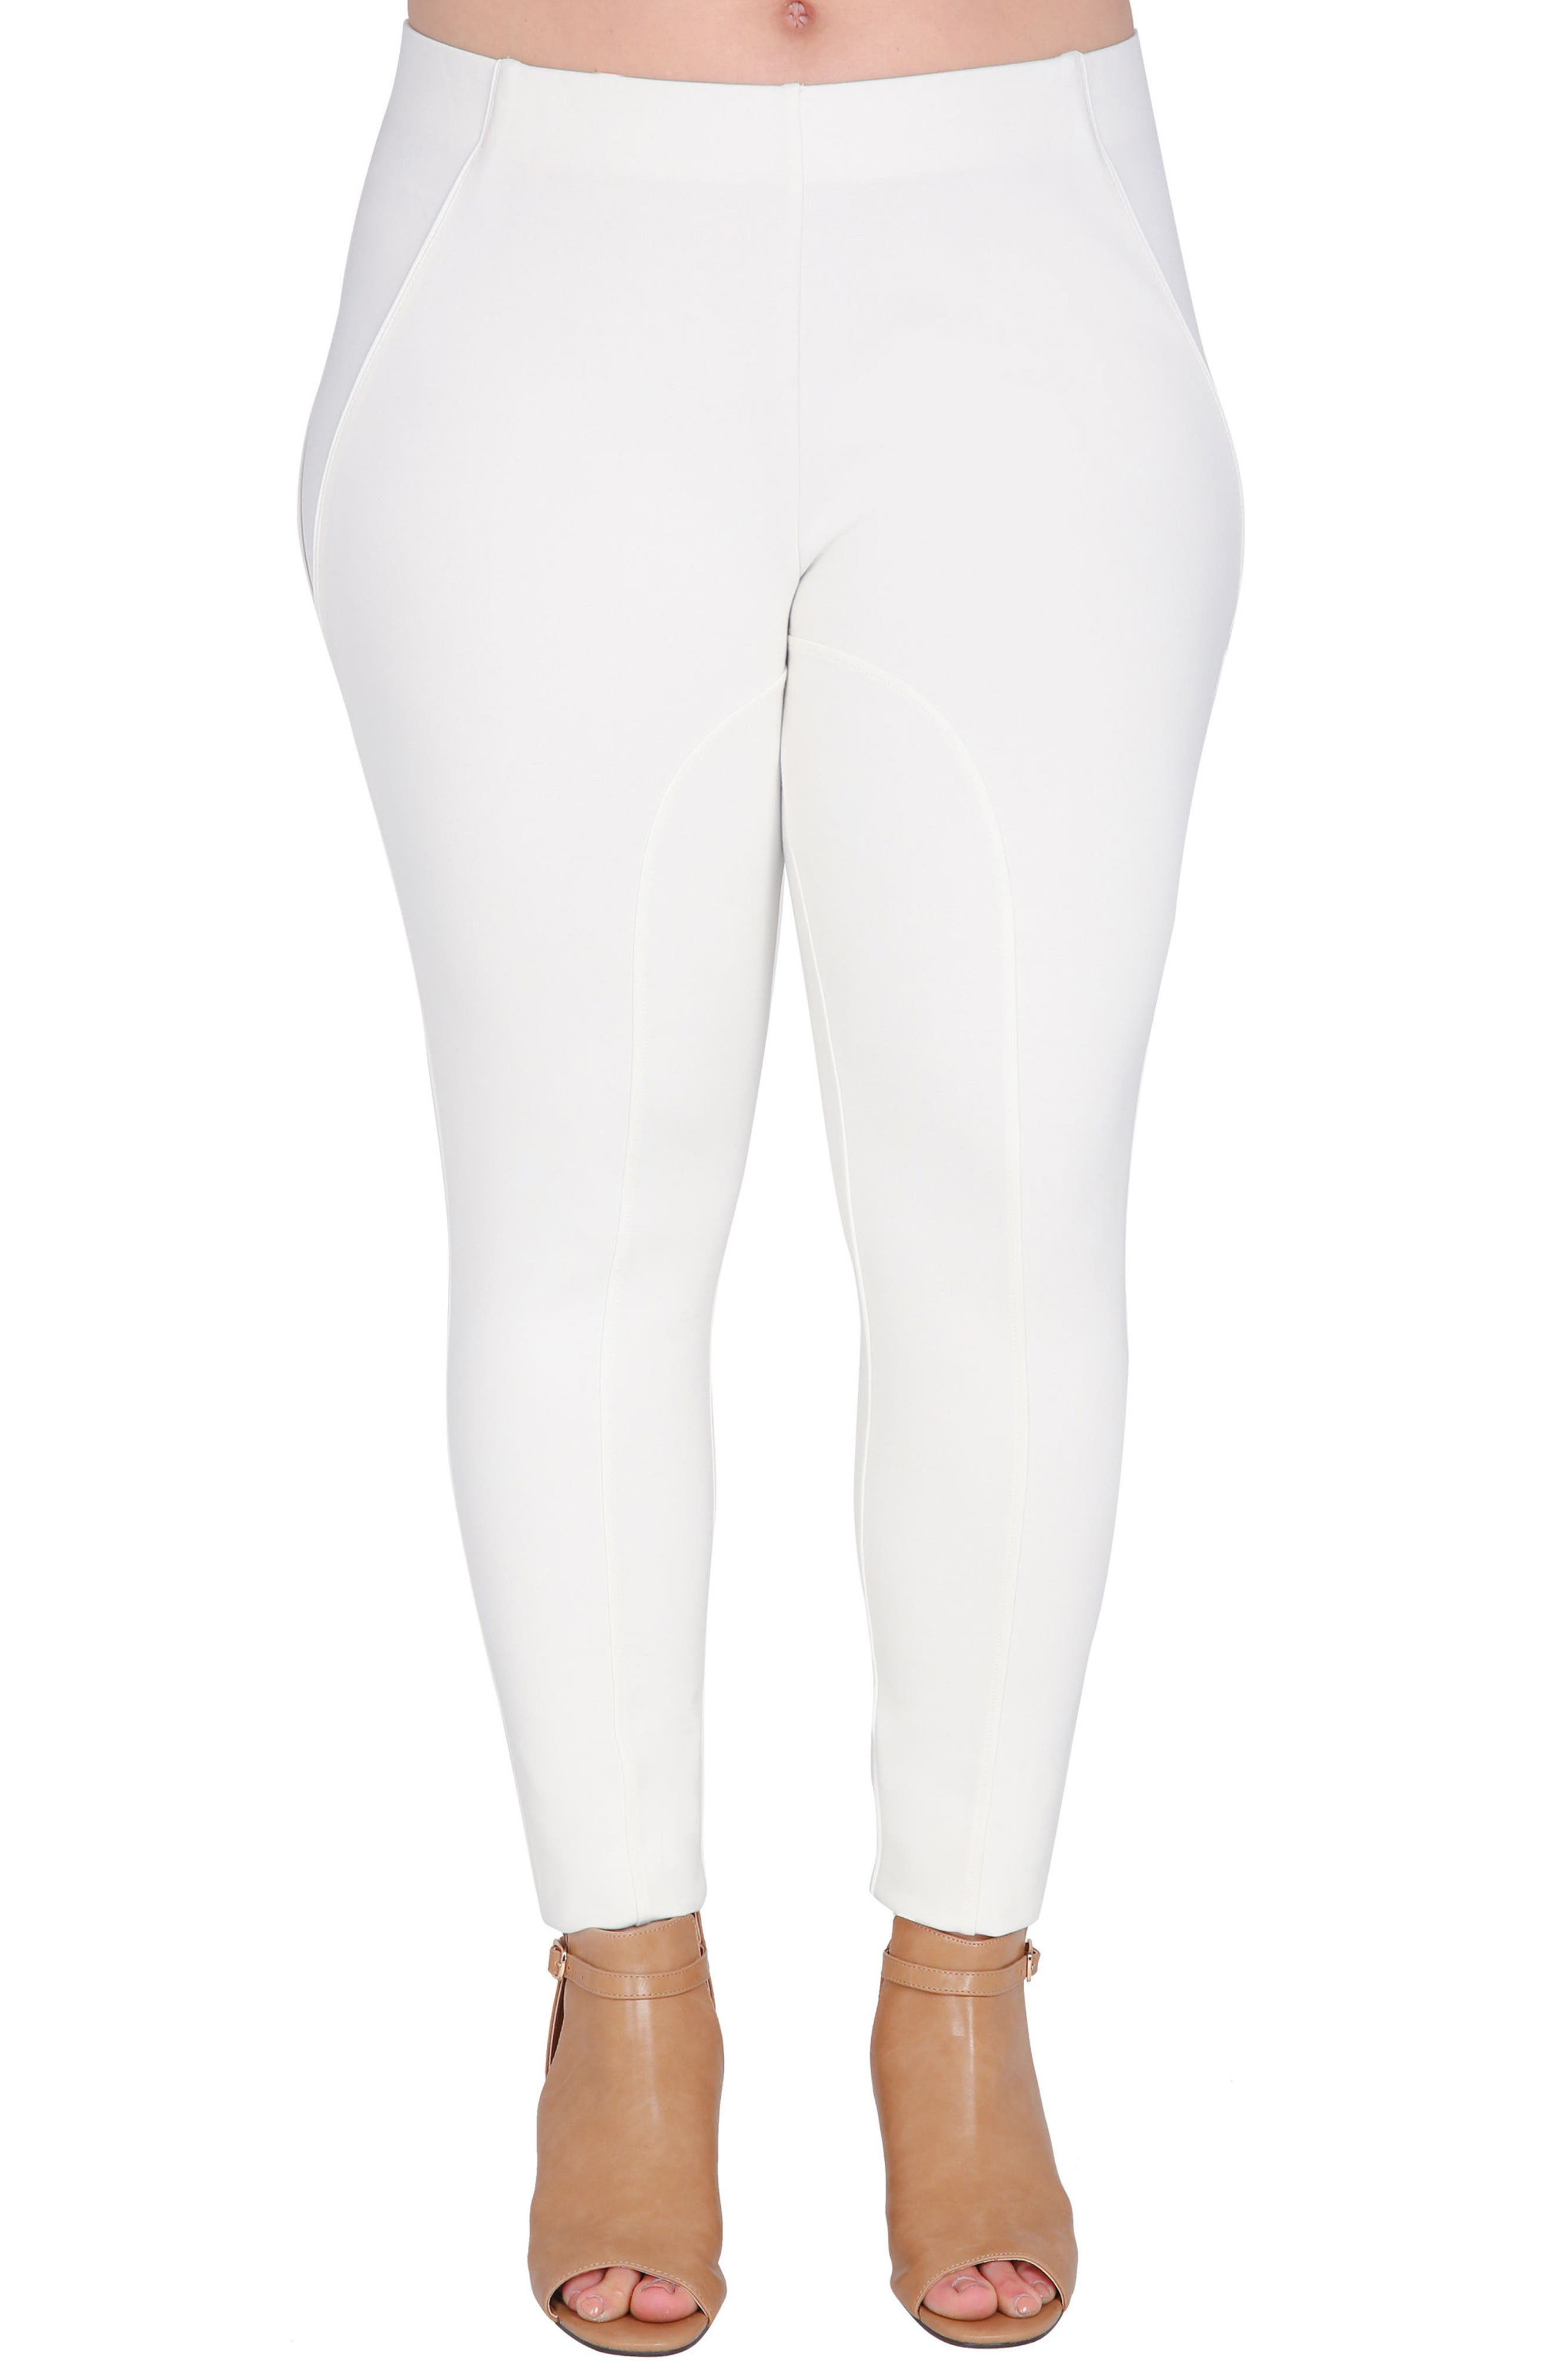 Belinda High Waist Ponte Leggings,                             Main thumbnail 1, color,                             White